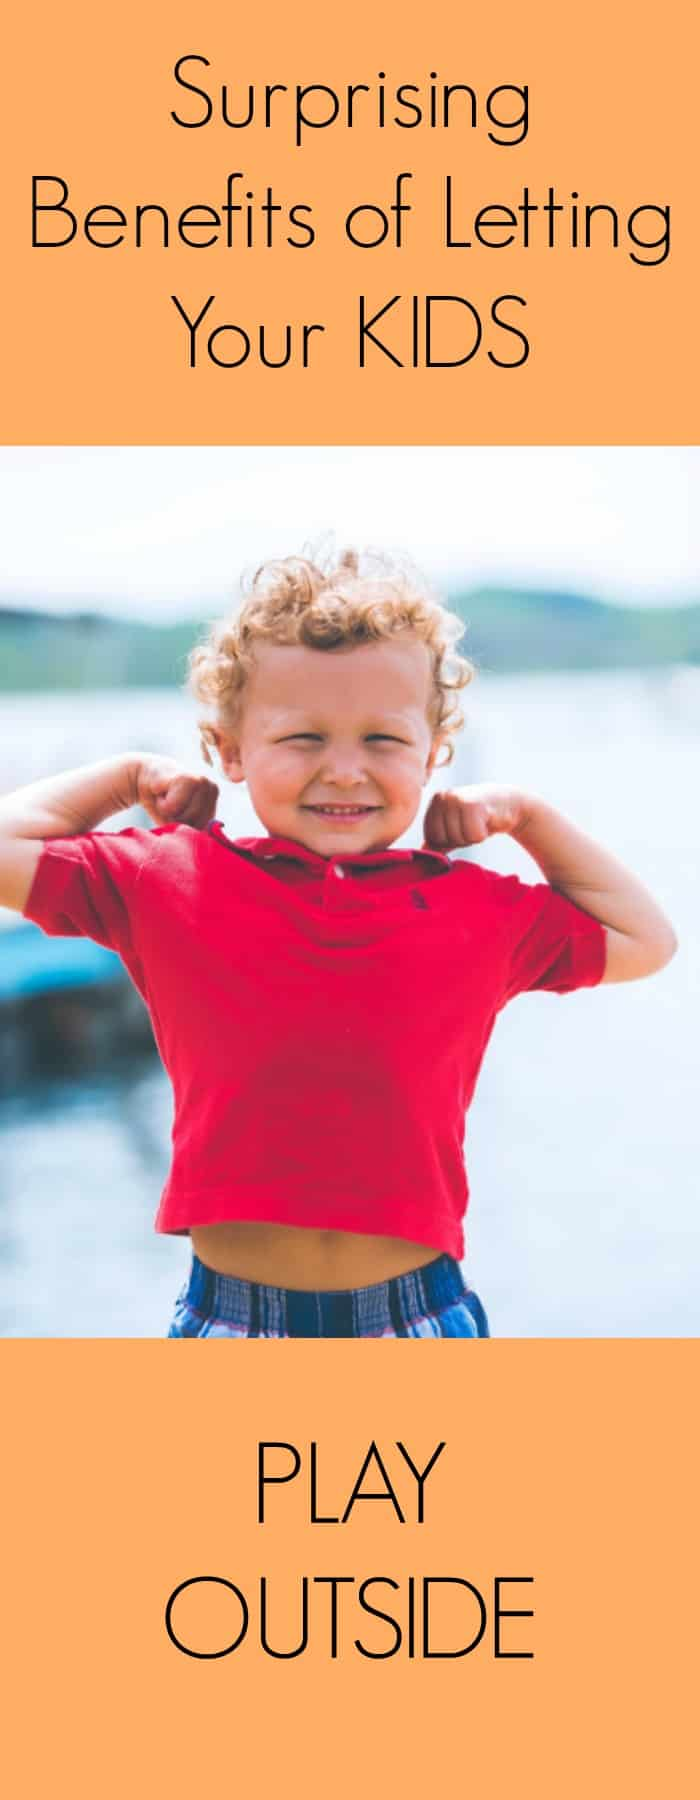 Surprising Benefits of Letting Your Kids Play Outside